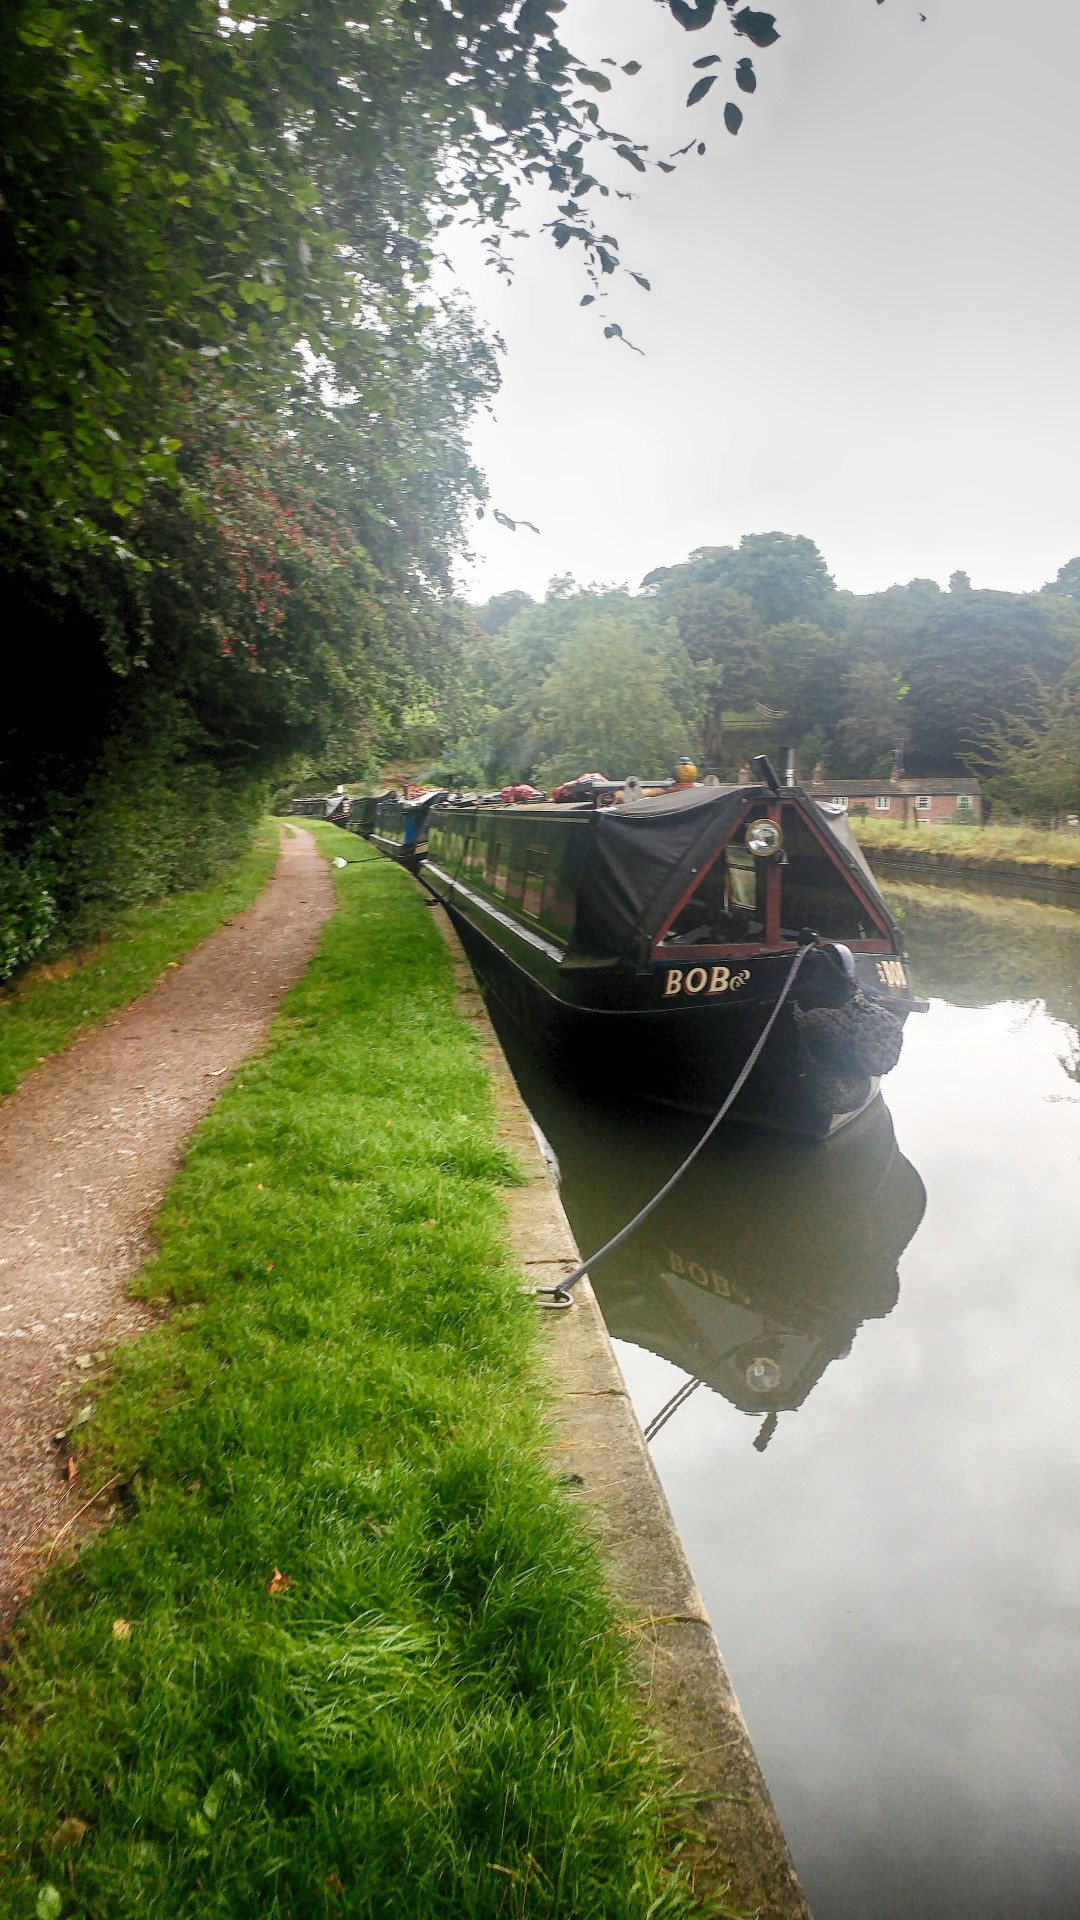 Canal boat BOB in now in colour